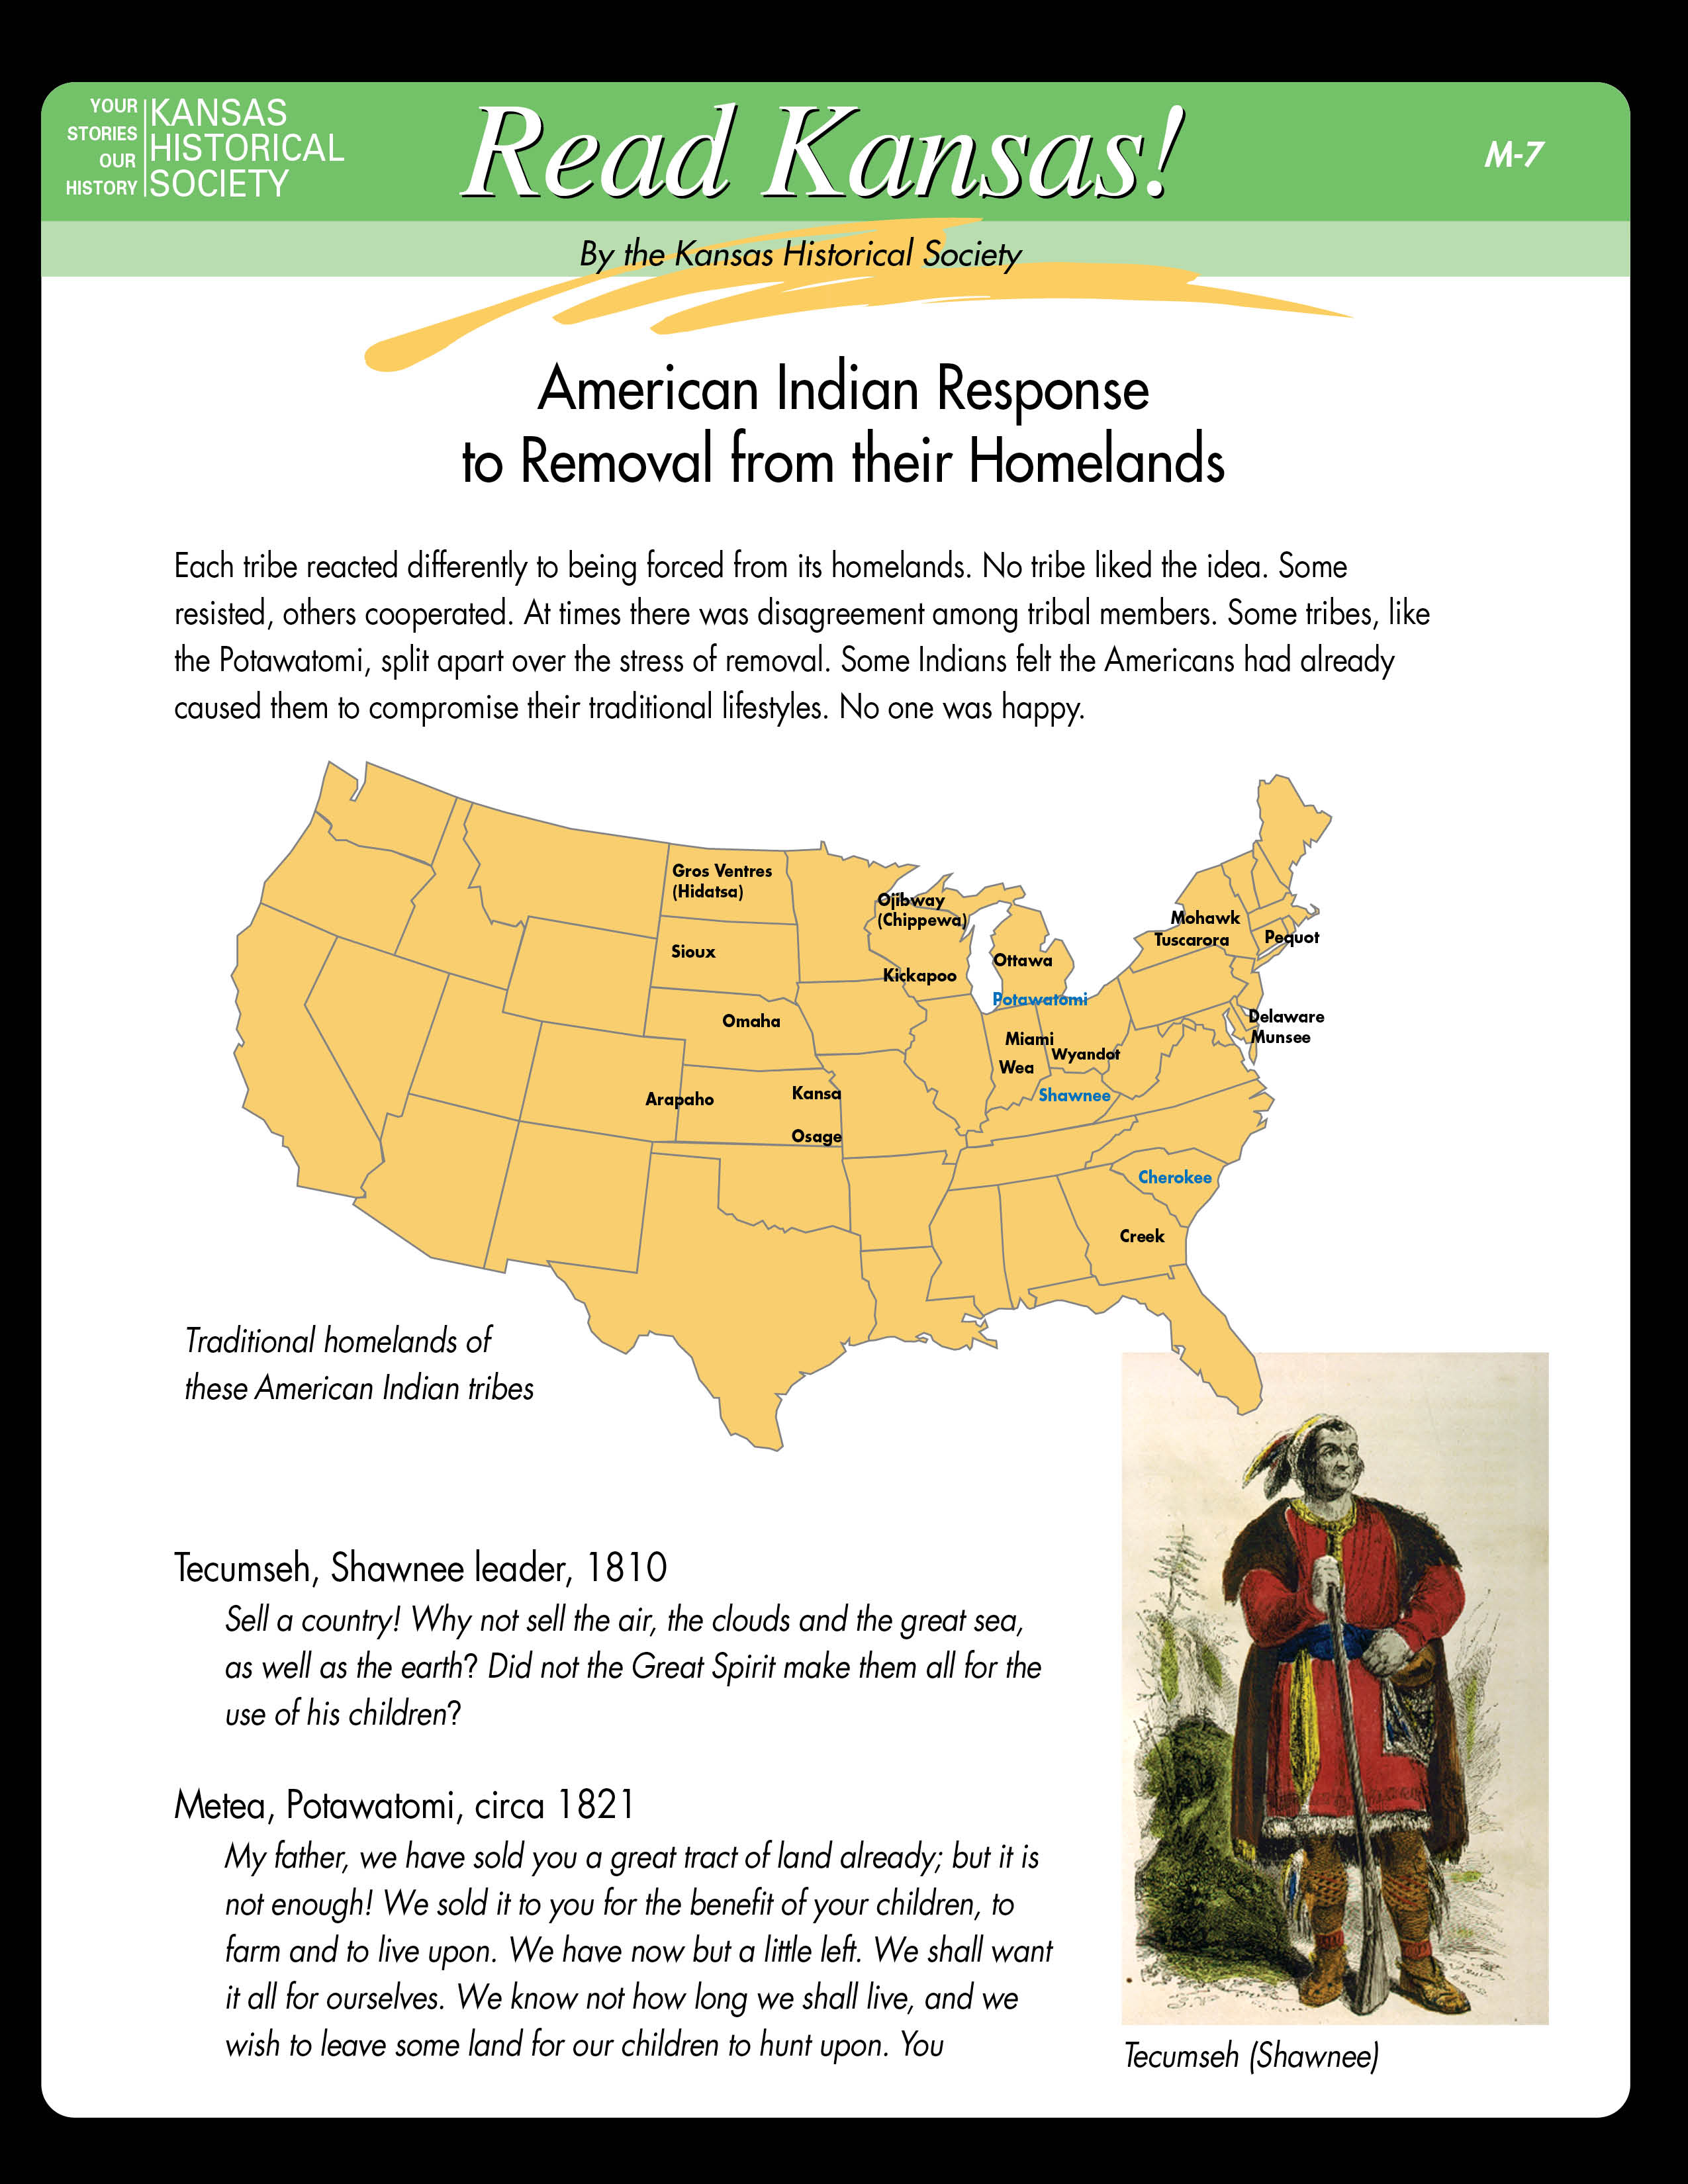 American Indian Response to Removal